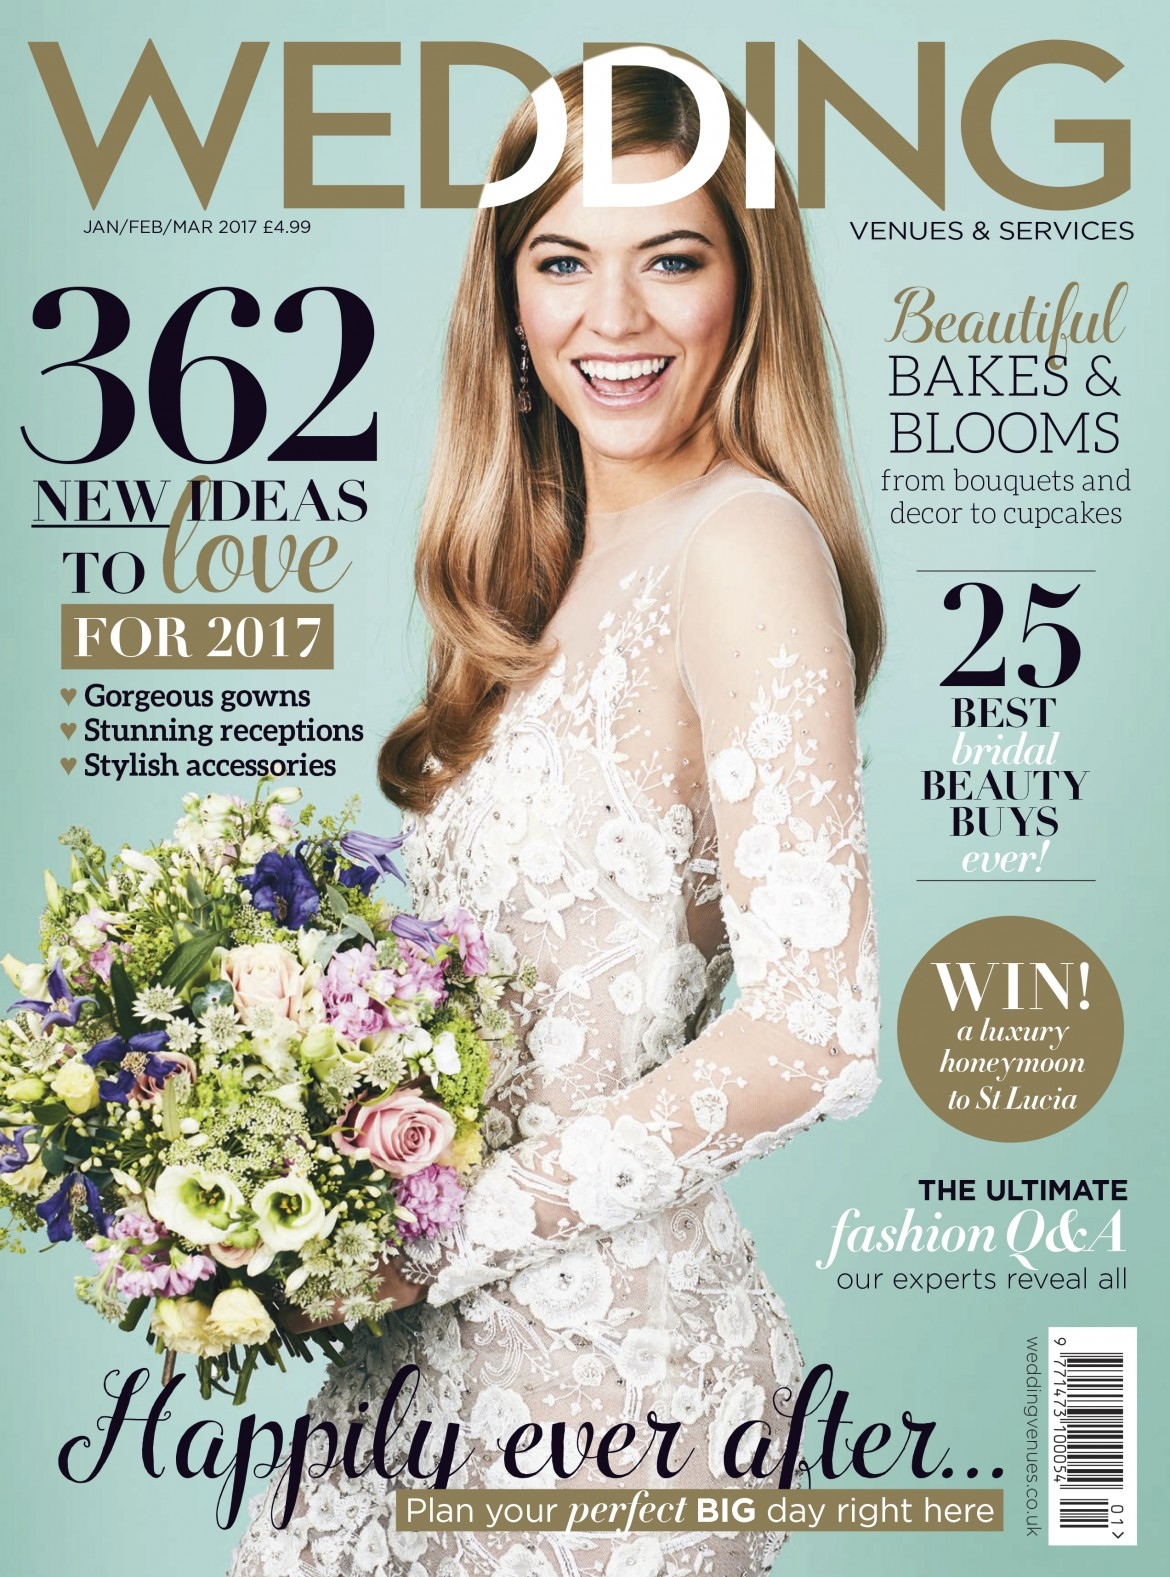 WVs cover designer wedding gowns by Caroline Castigliano